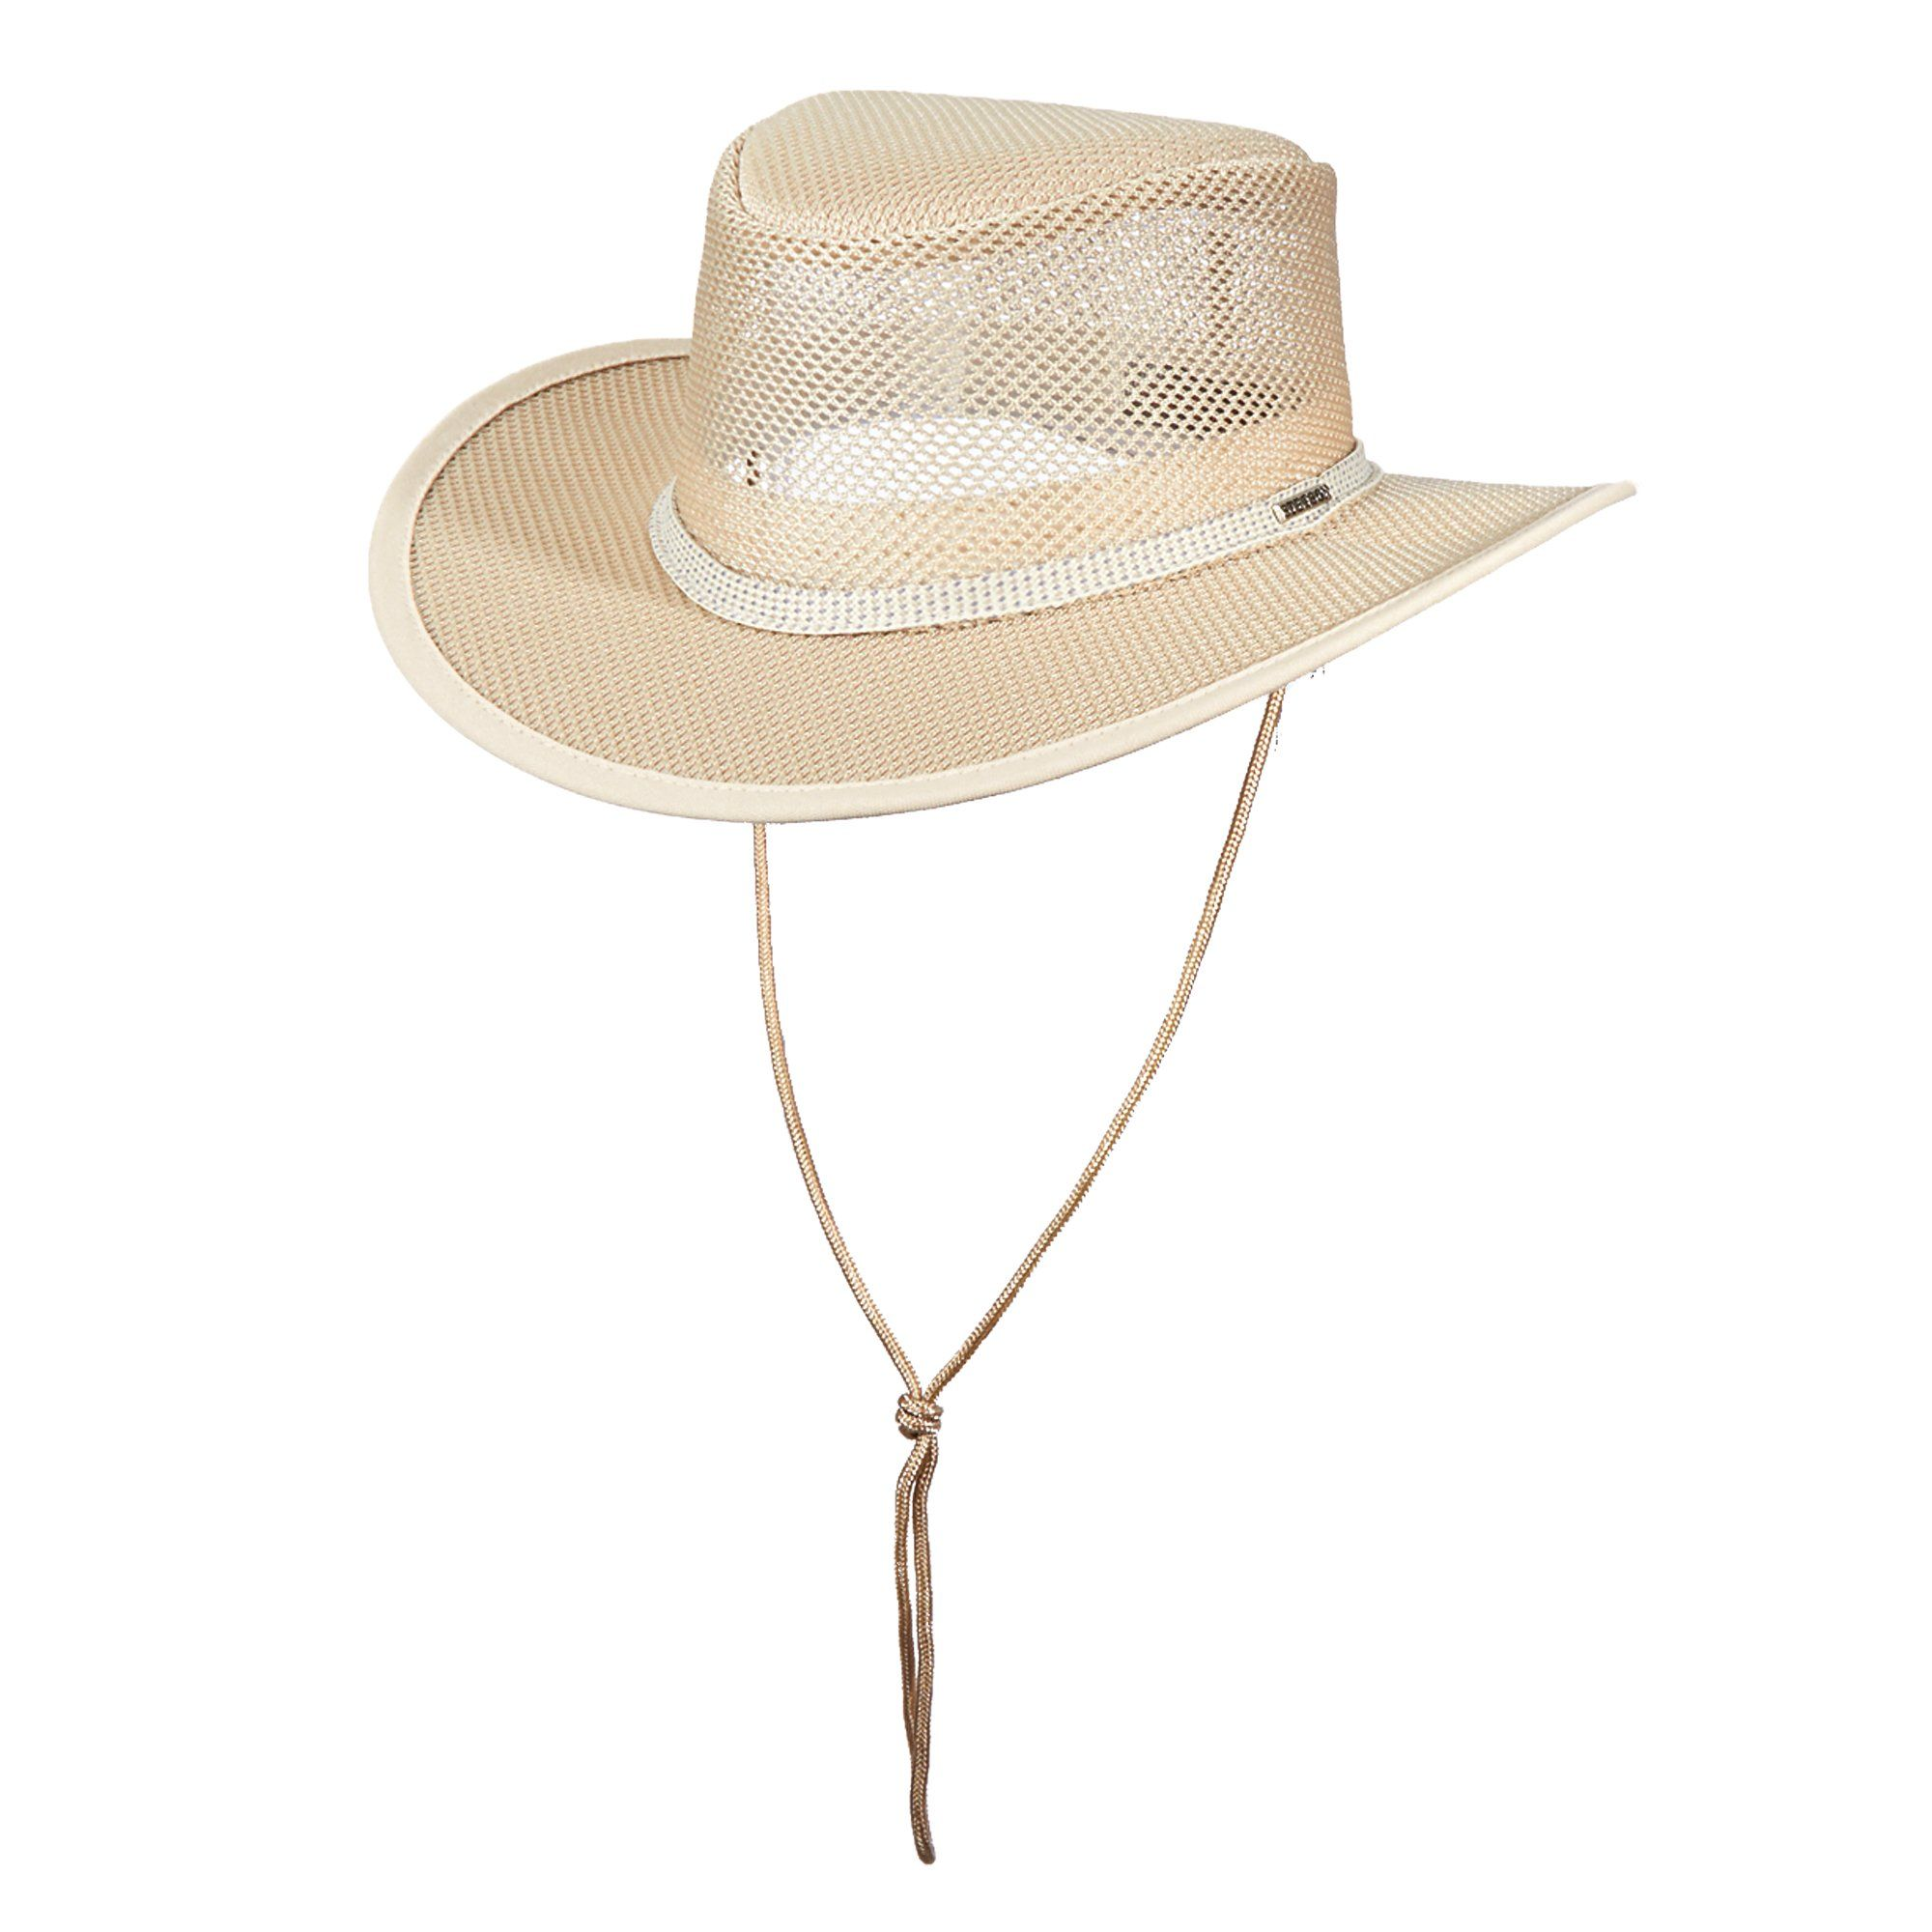 a21d3b97 This safari hat is your go-to hat for warmer climates. Keep cool in the  blazing sun with the coolmax technology and all around mesh.